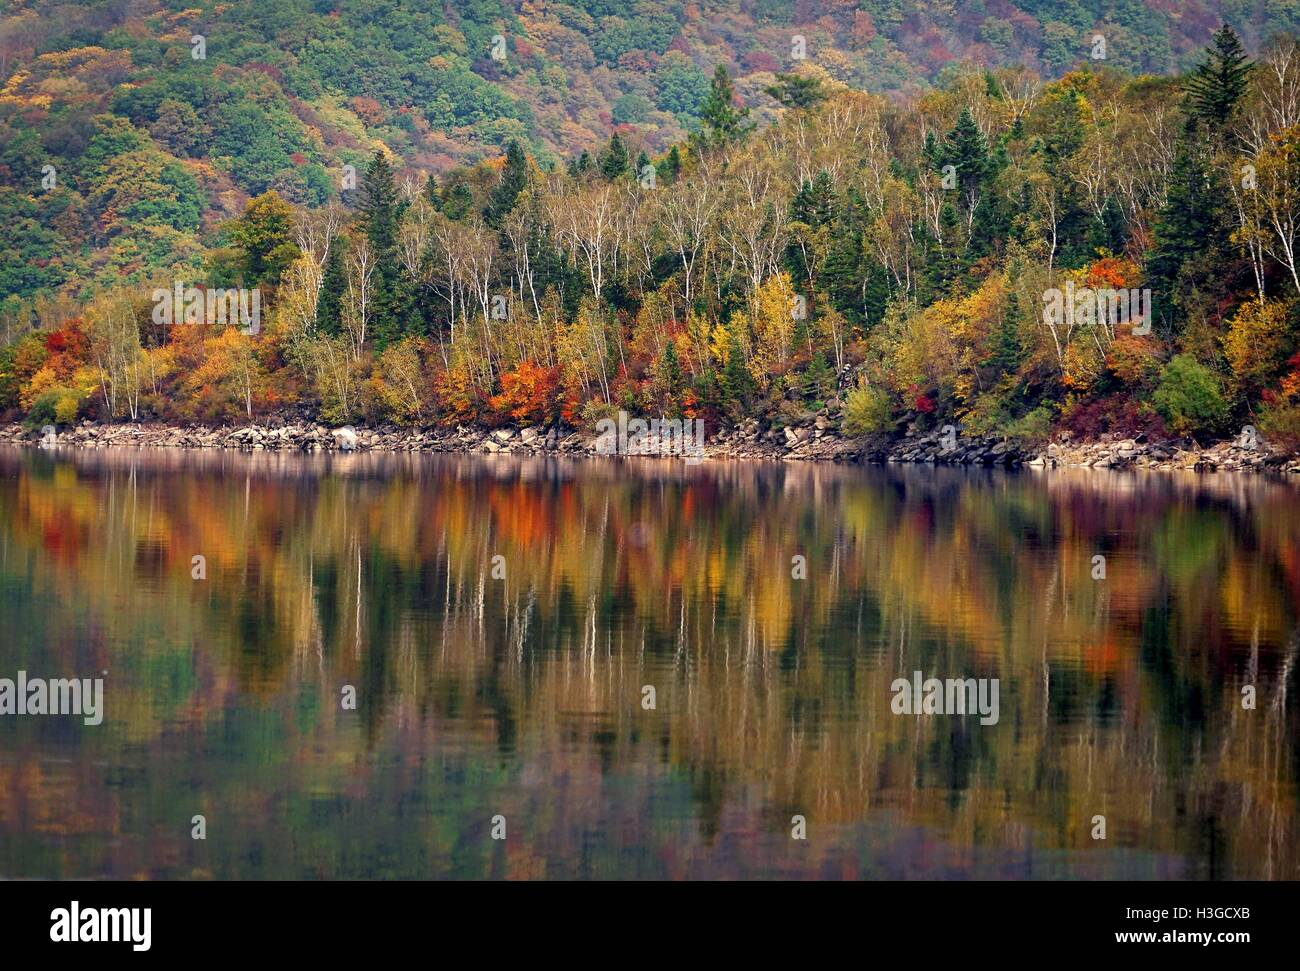 Beijing, China. 26th Sep, 2016. Photo taken on Sept. 26, 2016 shows the autumn scenery in Liangjiang Township of - Stock Image